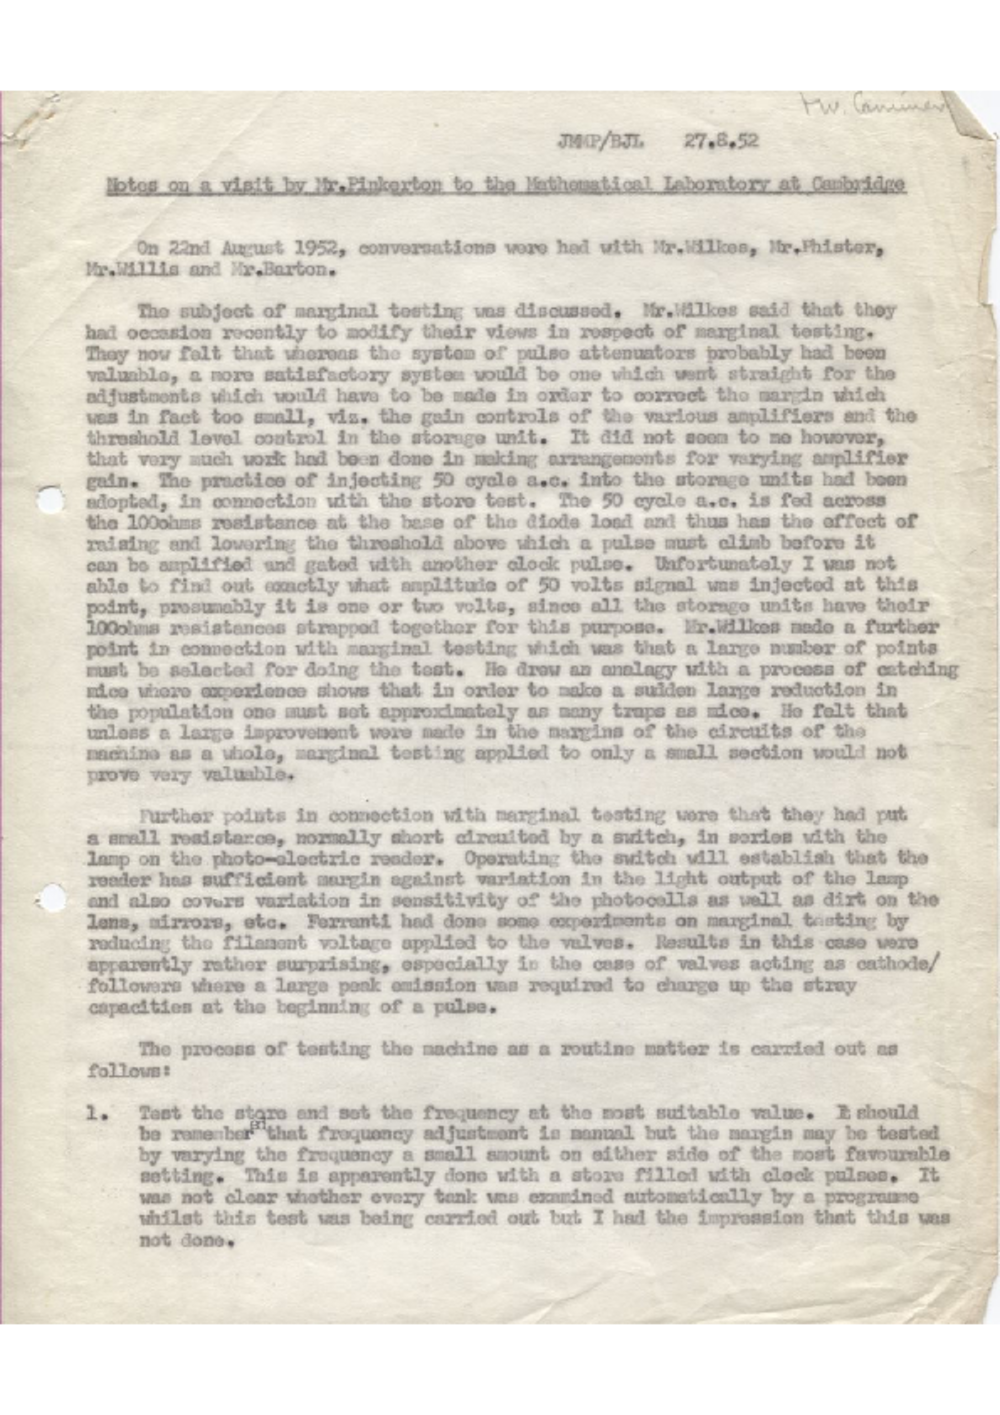 Article: 54871 Notes on a Visit by Mr Pinkerton to the Mathematical Laboratory at Cambridge, Aug 1952